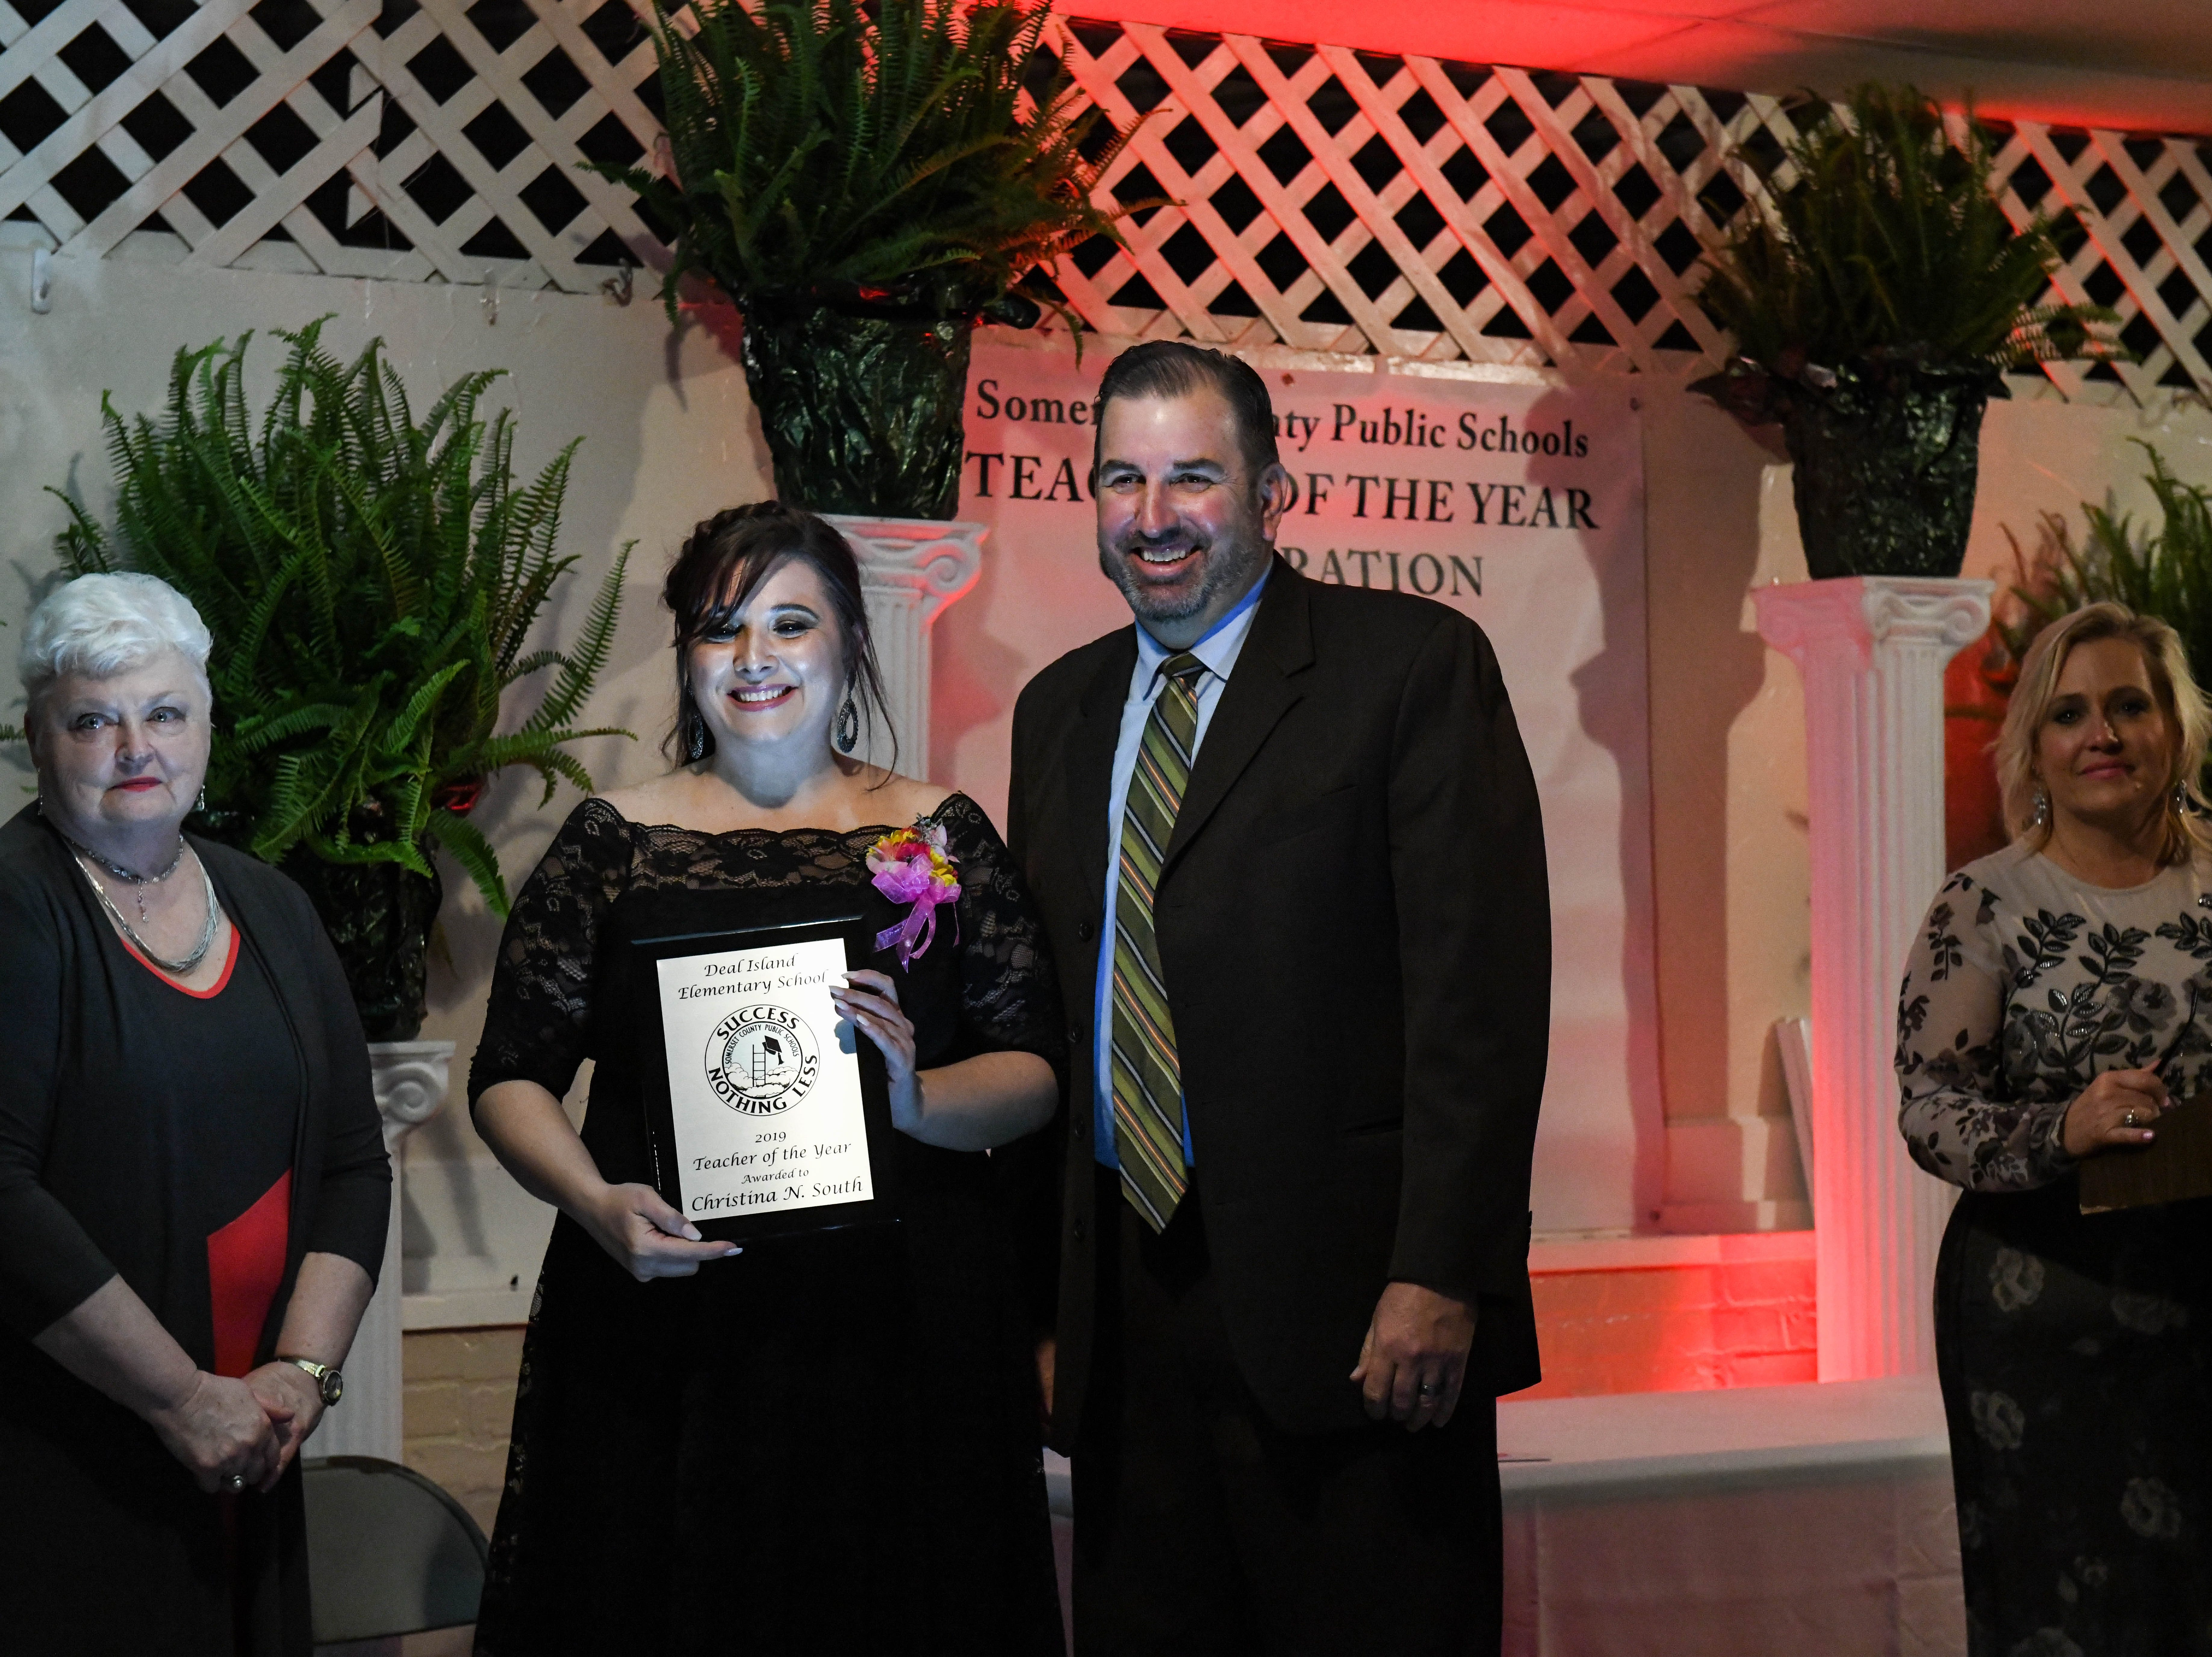 Deal Island Elementary teacher Christina South receives a plaque for her Somerset County teacher of the year award at the banquet on Friday, April 5, 2019.